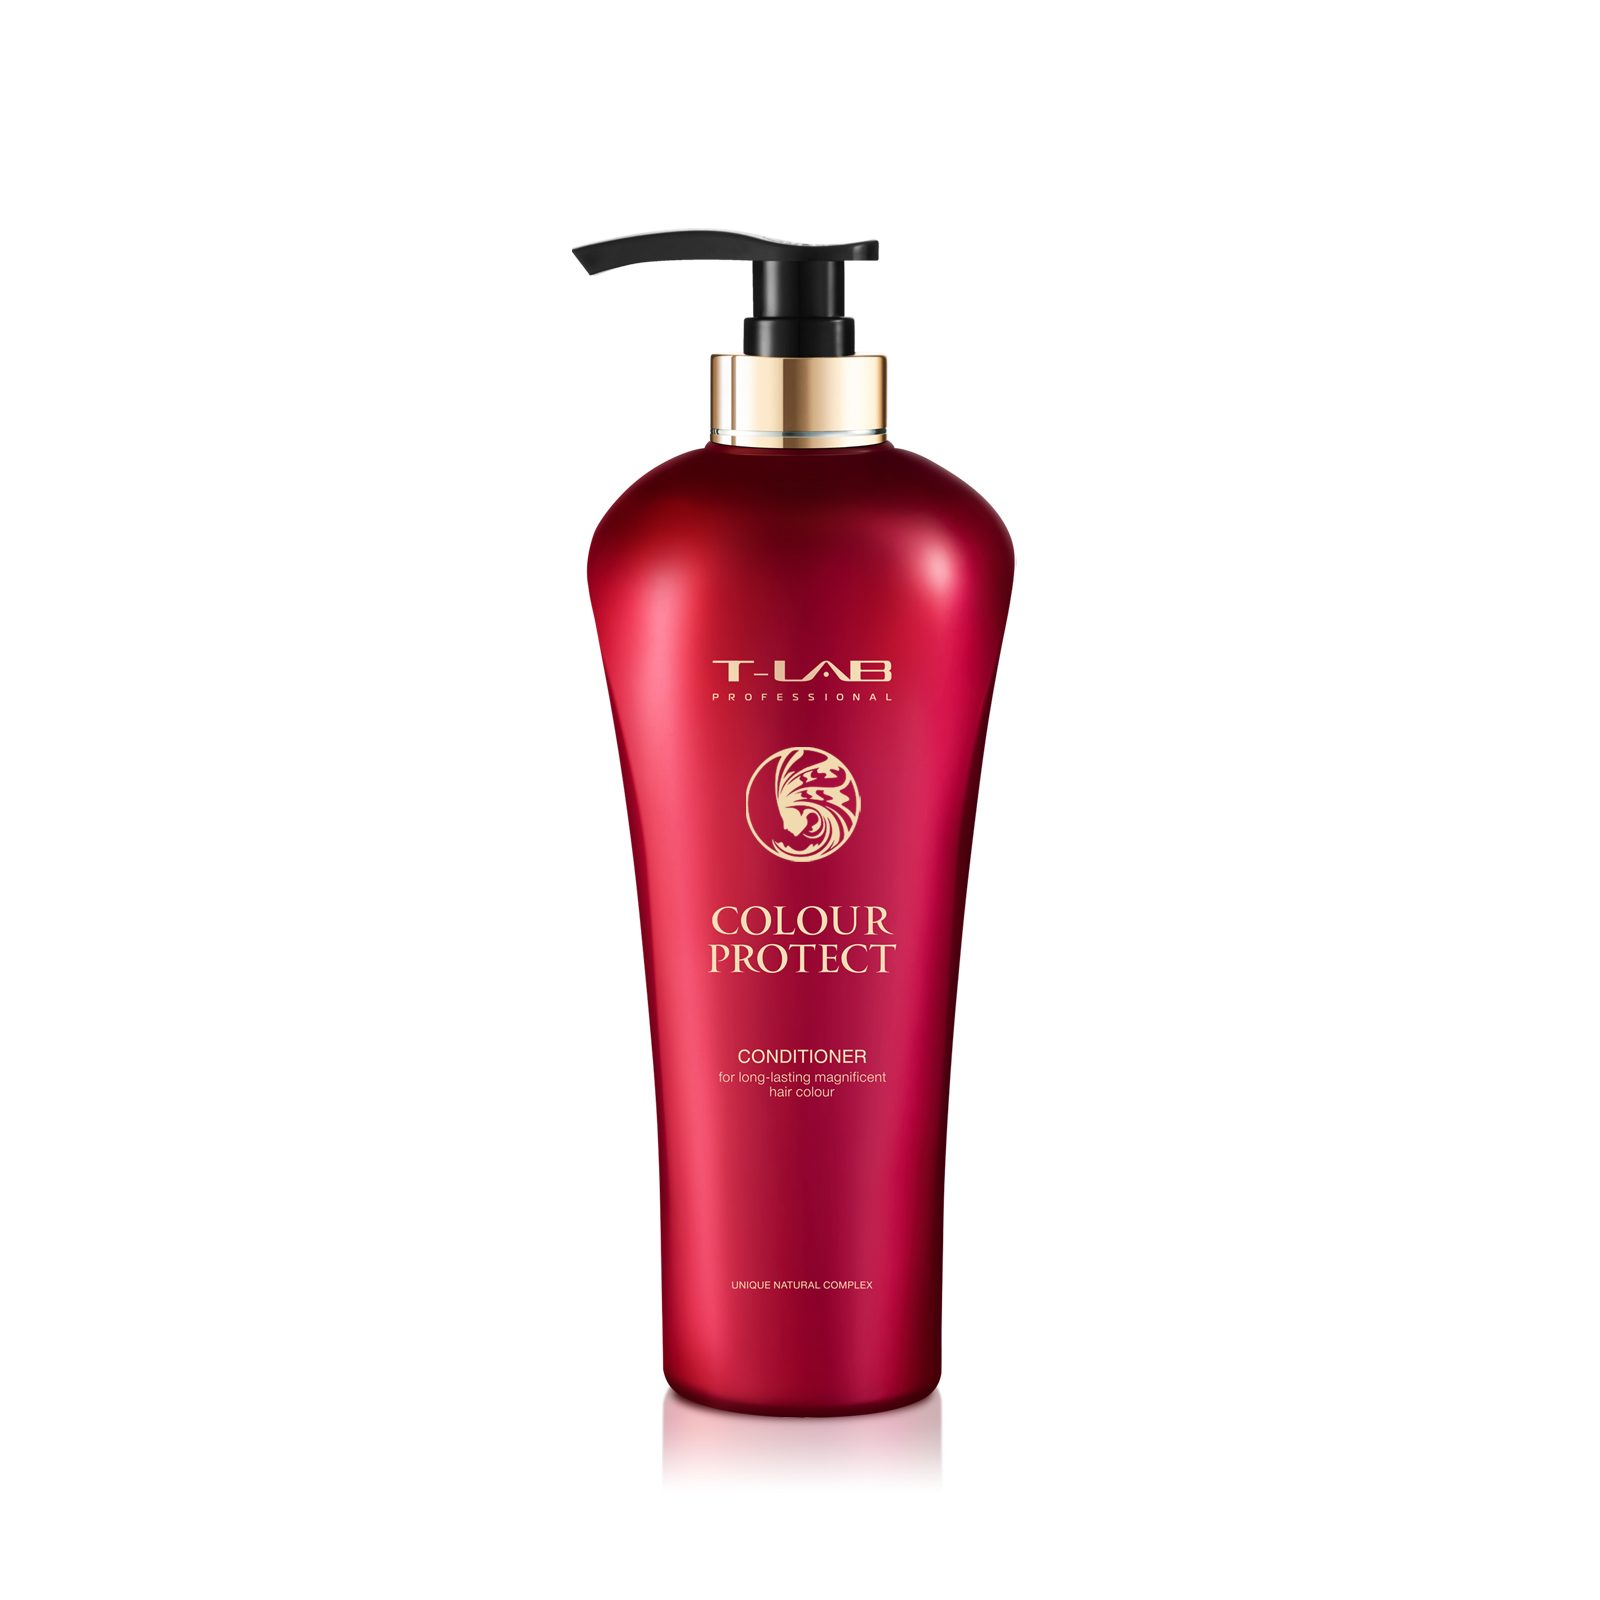 COLOUR PROTECT CONDITIONER 750 ml